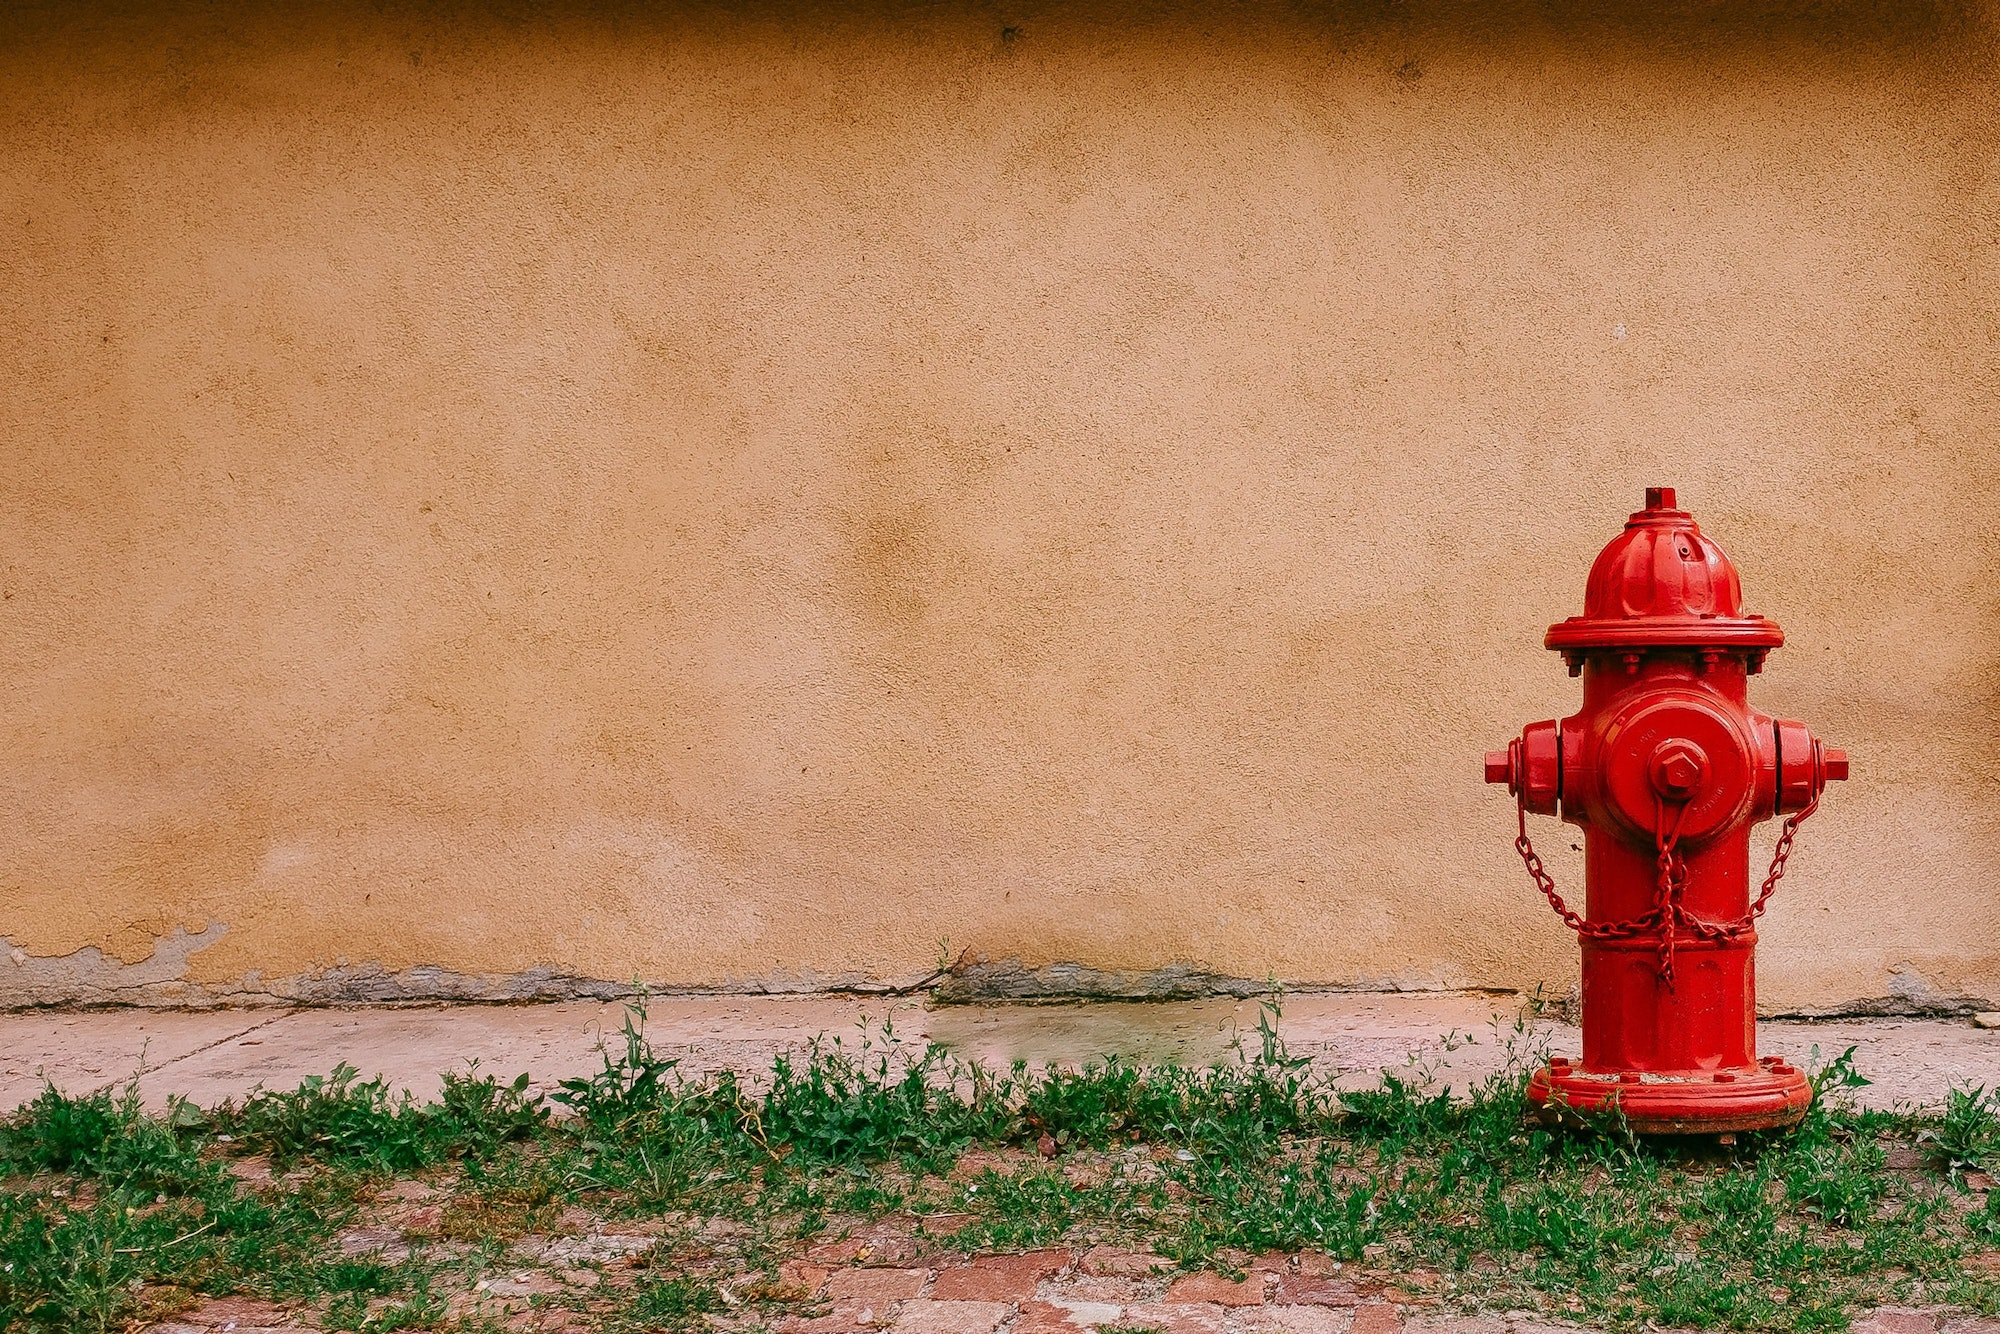 May contain: fire hydrant and hydrant